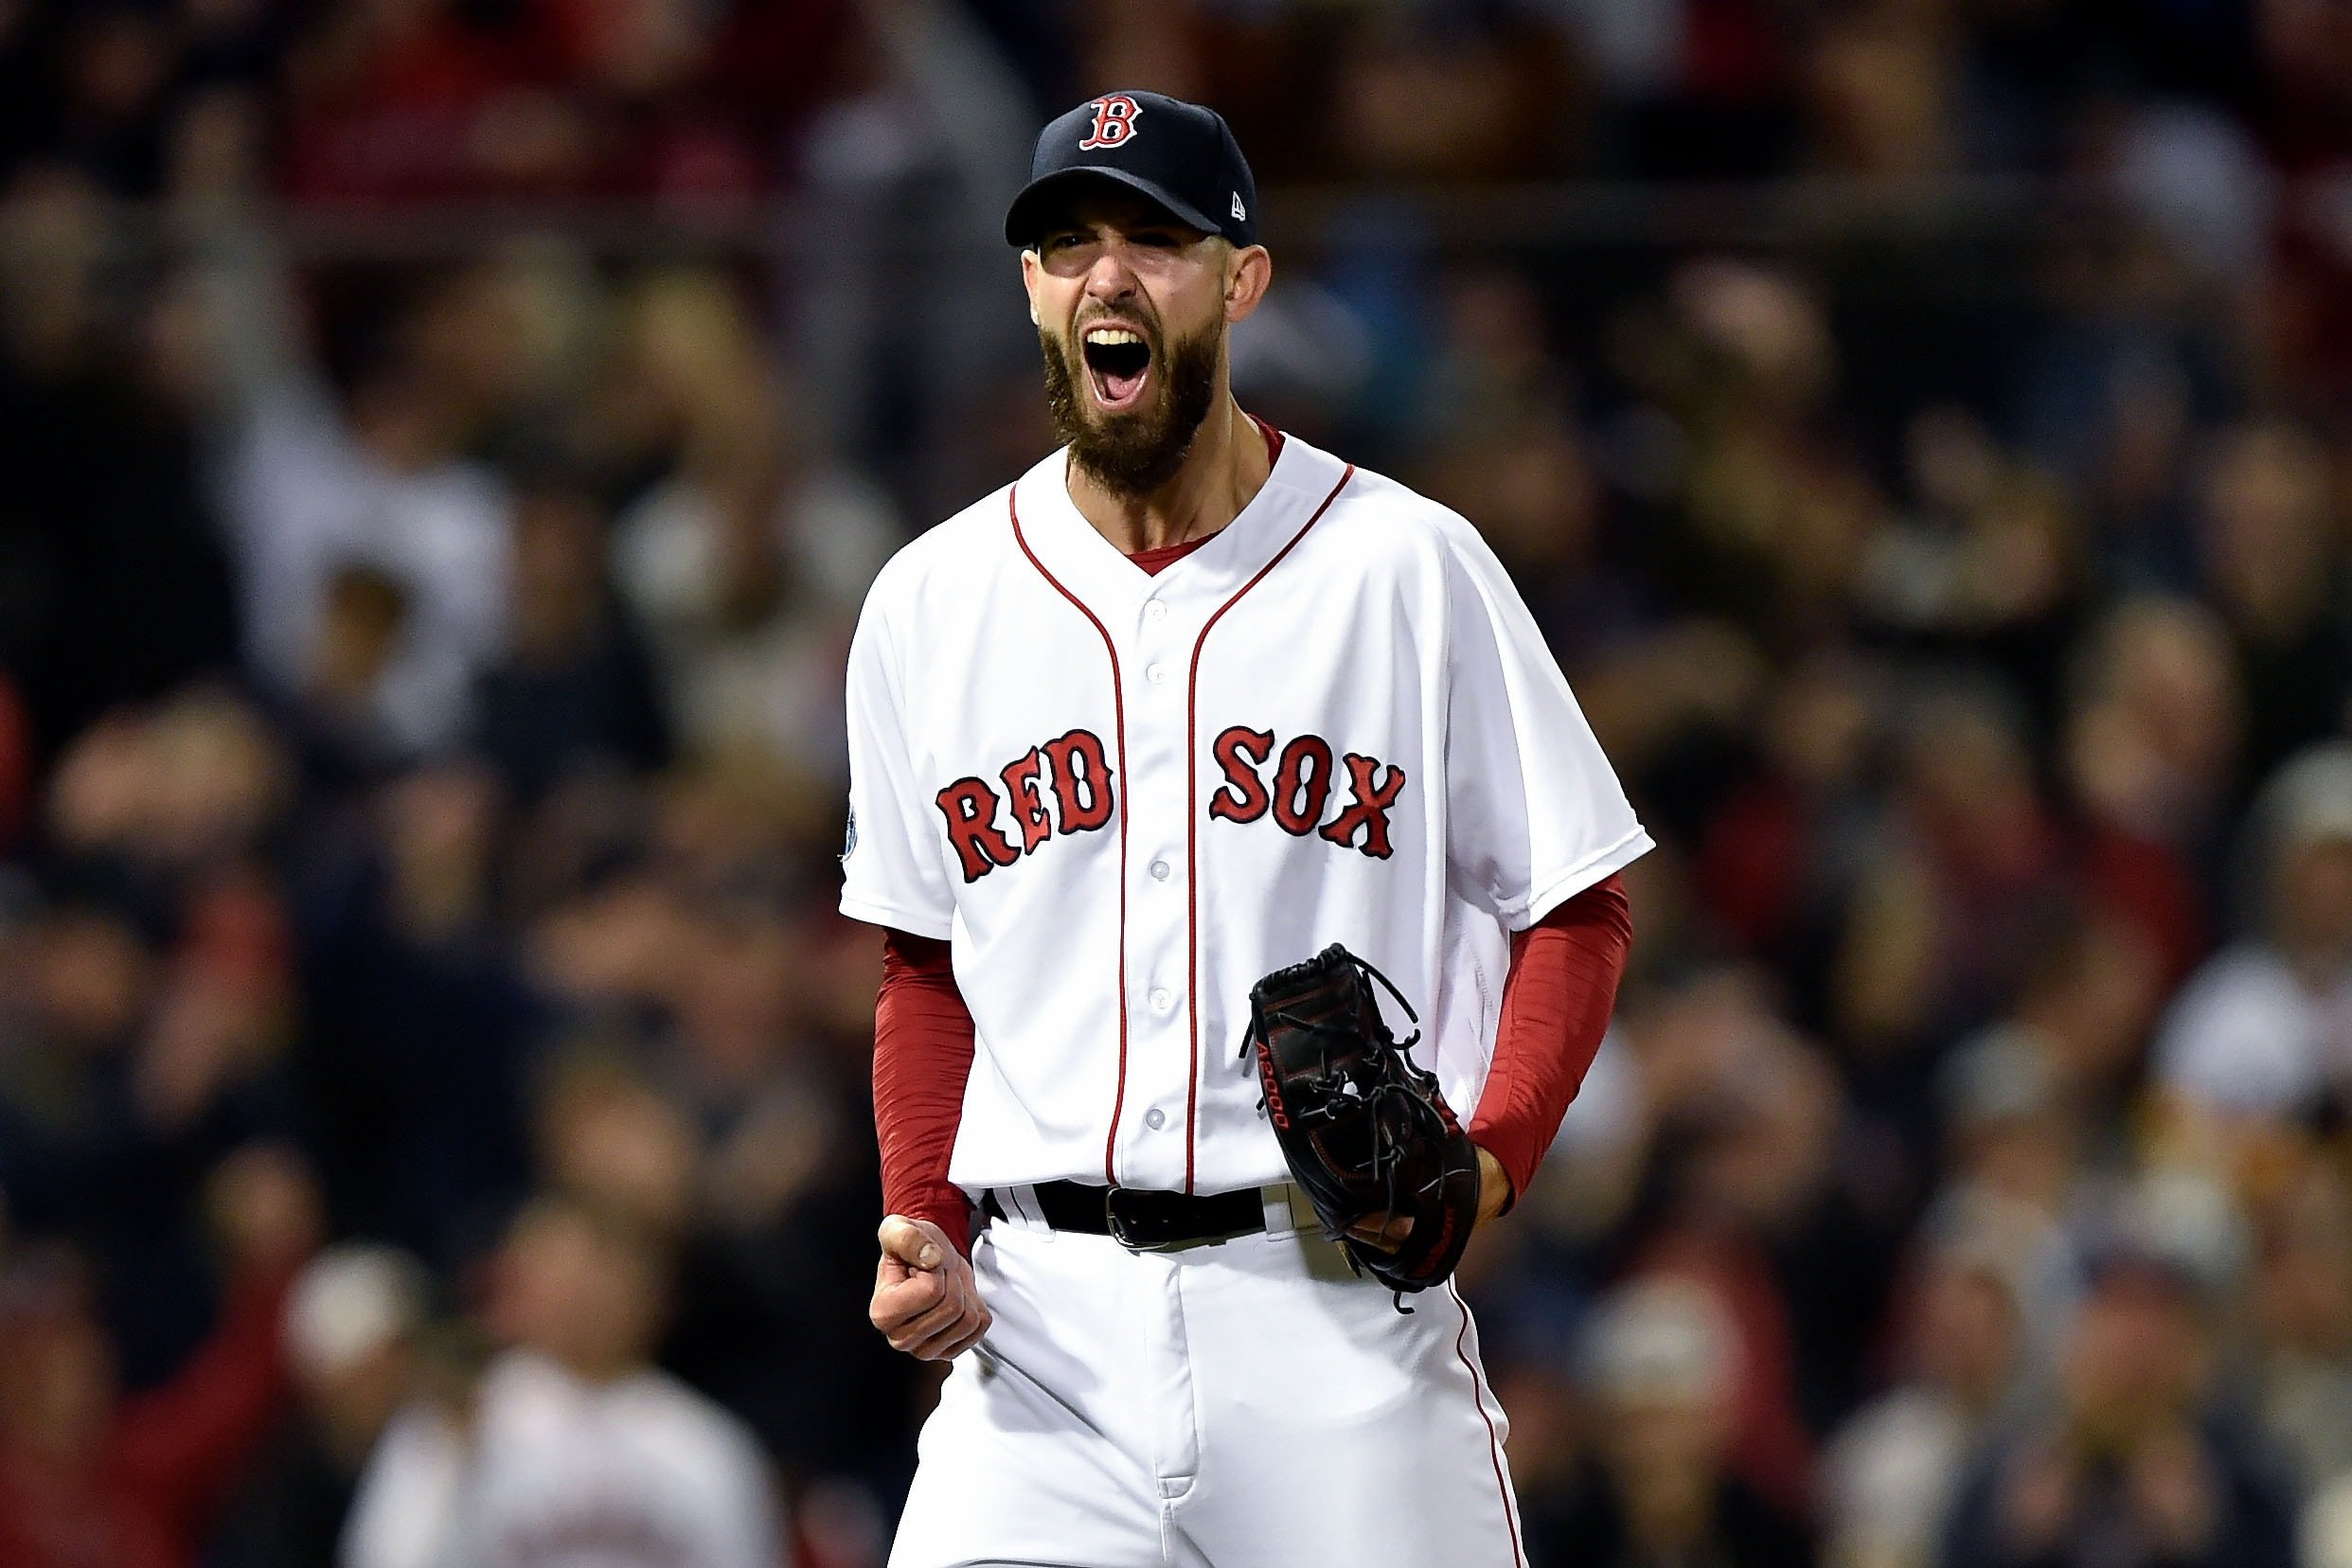 Oct 14, 2018; Boston, MA, USA; Boston Red Sox starting pitcher Rick Porcello (22) reacts after striking out Houston Astros shortstop Carlos Correa (1) during the eighth inning in game two of the 2018 ALCS playoff baseball series at Fenway Park. Mandatory Credit: Bob DeChiara-USA TODAY Sports